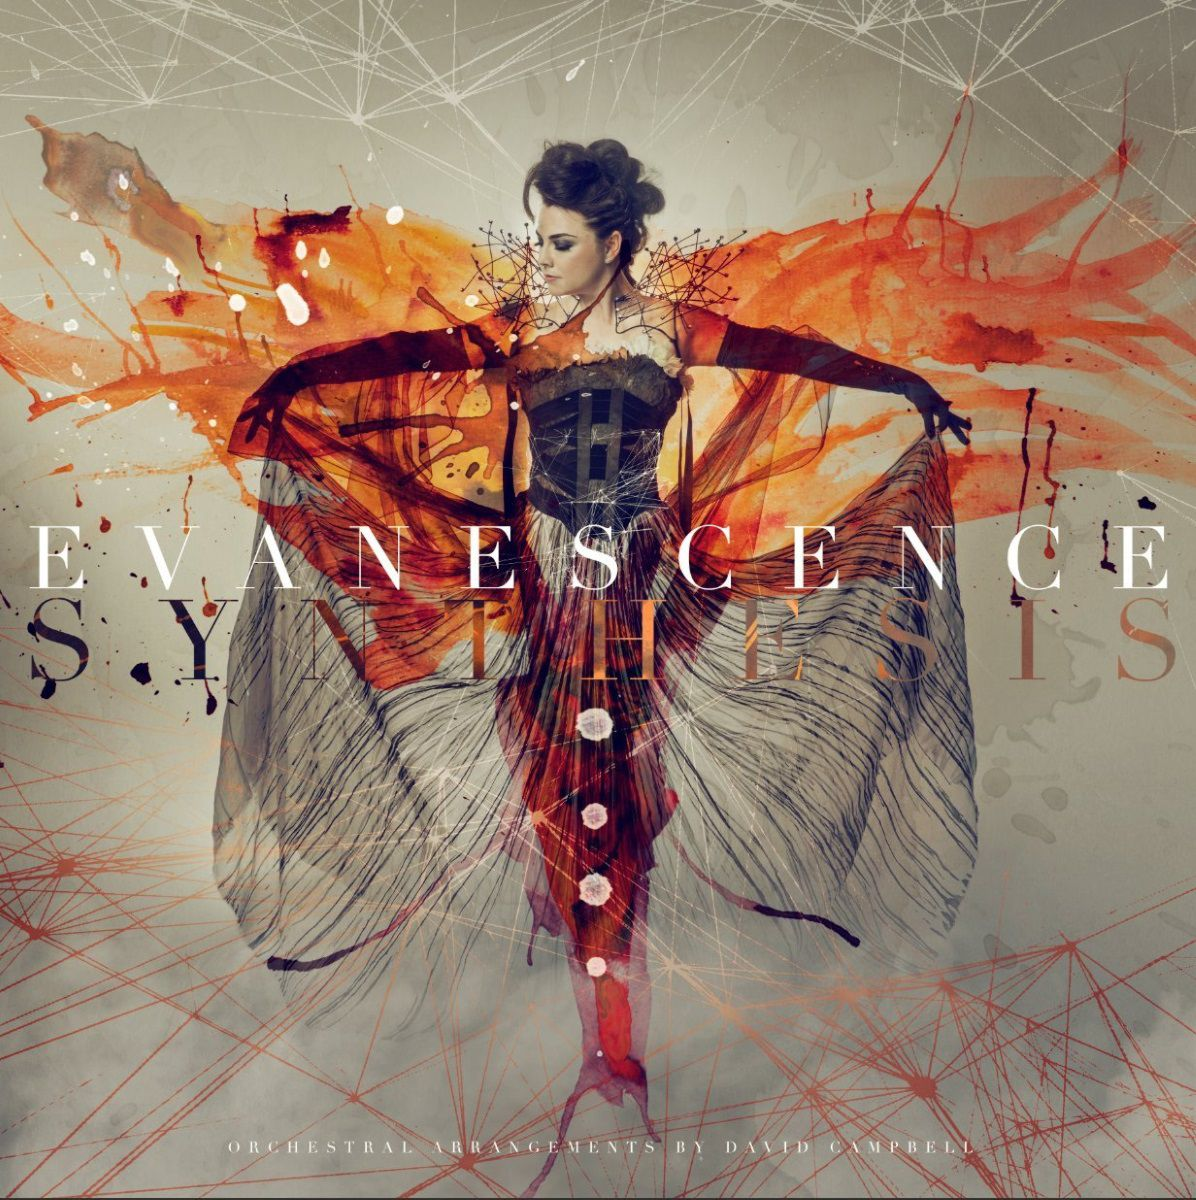 Evanescence – Synthesis. Deluxe Edition (CD + DVD) hurts – happiness deluxe cd dvd